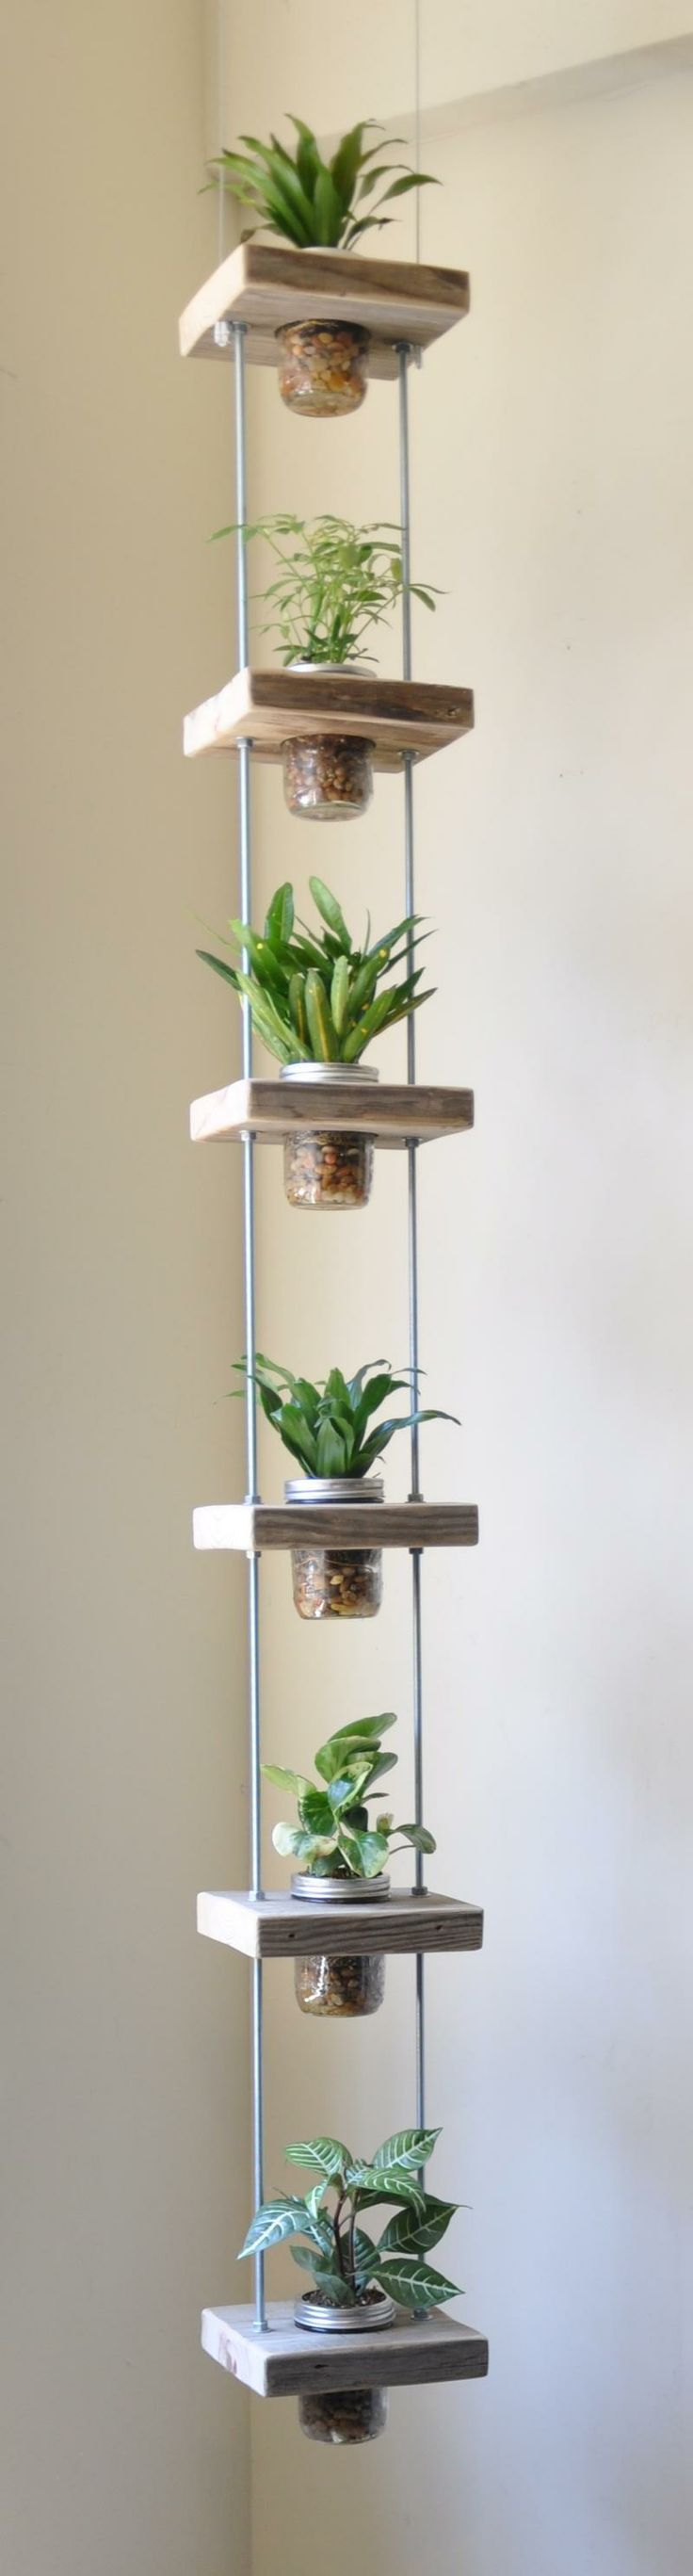 Creative Indoor Vertical Wall Gardens • Great for fresh herbs